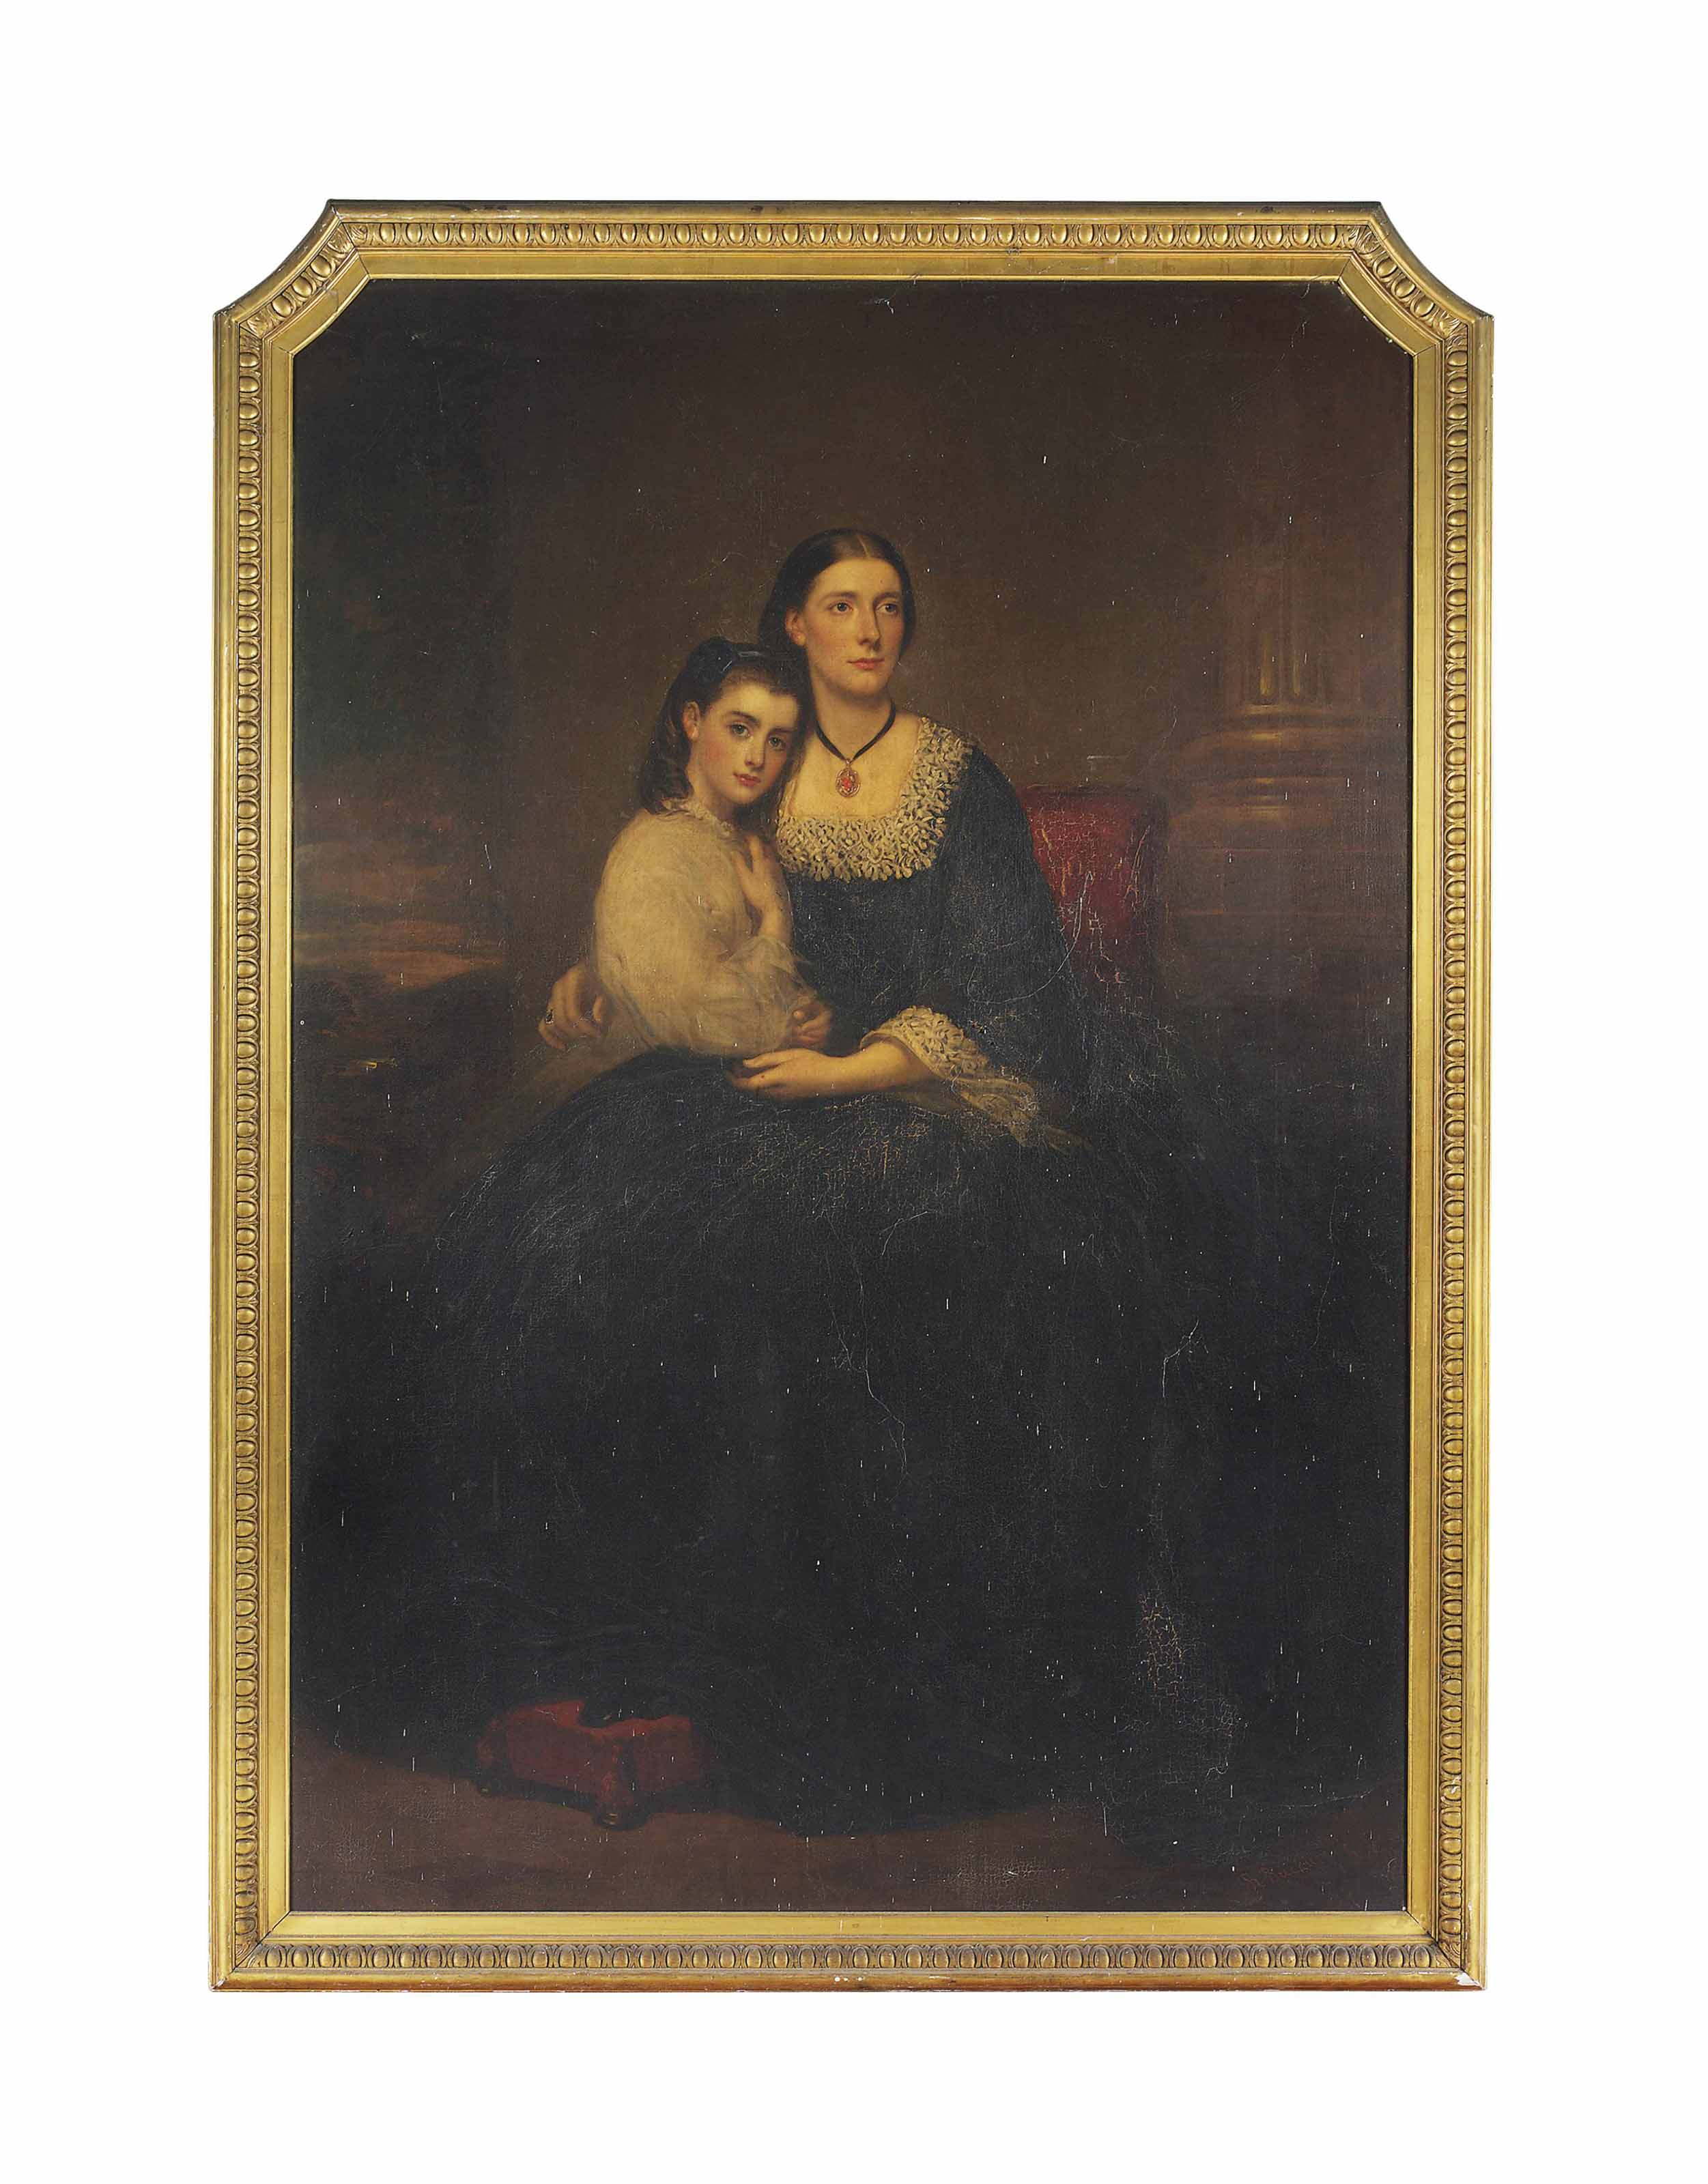 Portrait of Emily, 1st Vicountess Hambleden, and her daughter, full-length, seated on a red chair